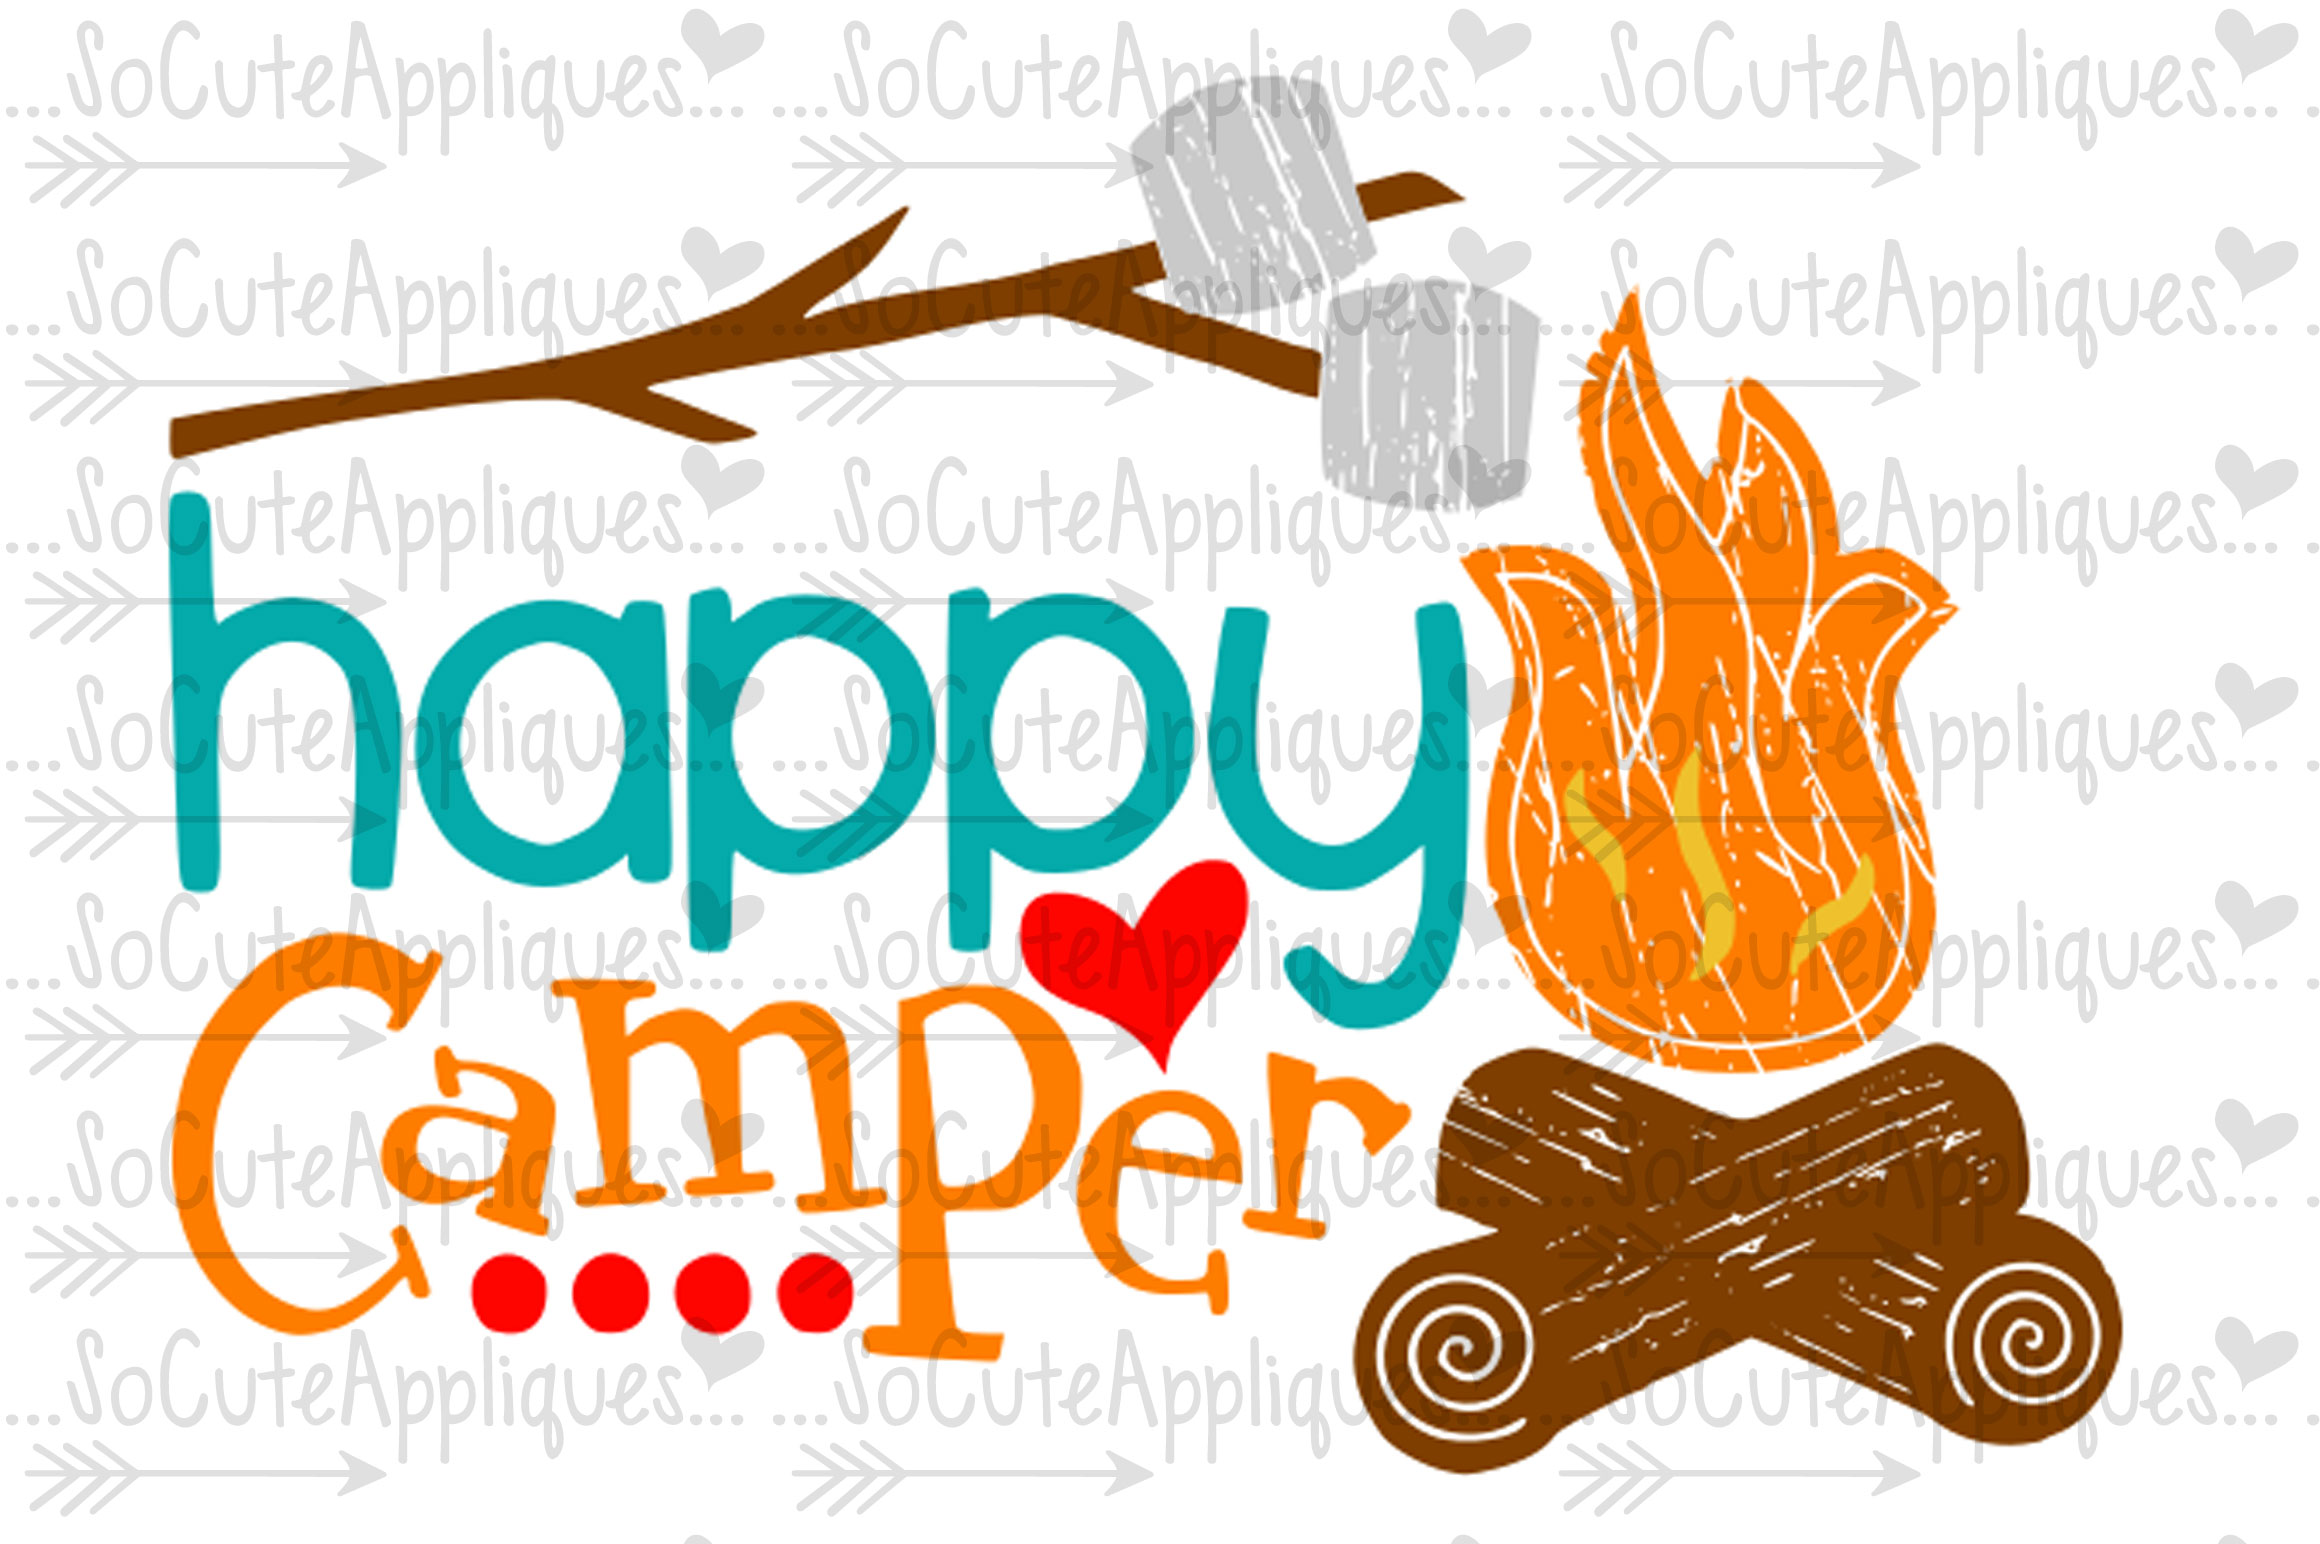 Camper clipart happy camper. So cute appliques svg